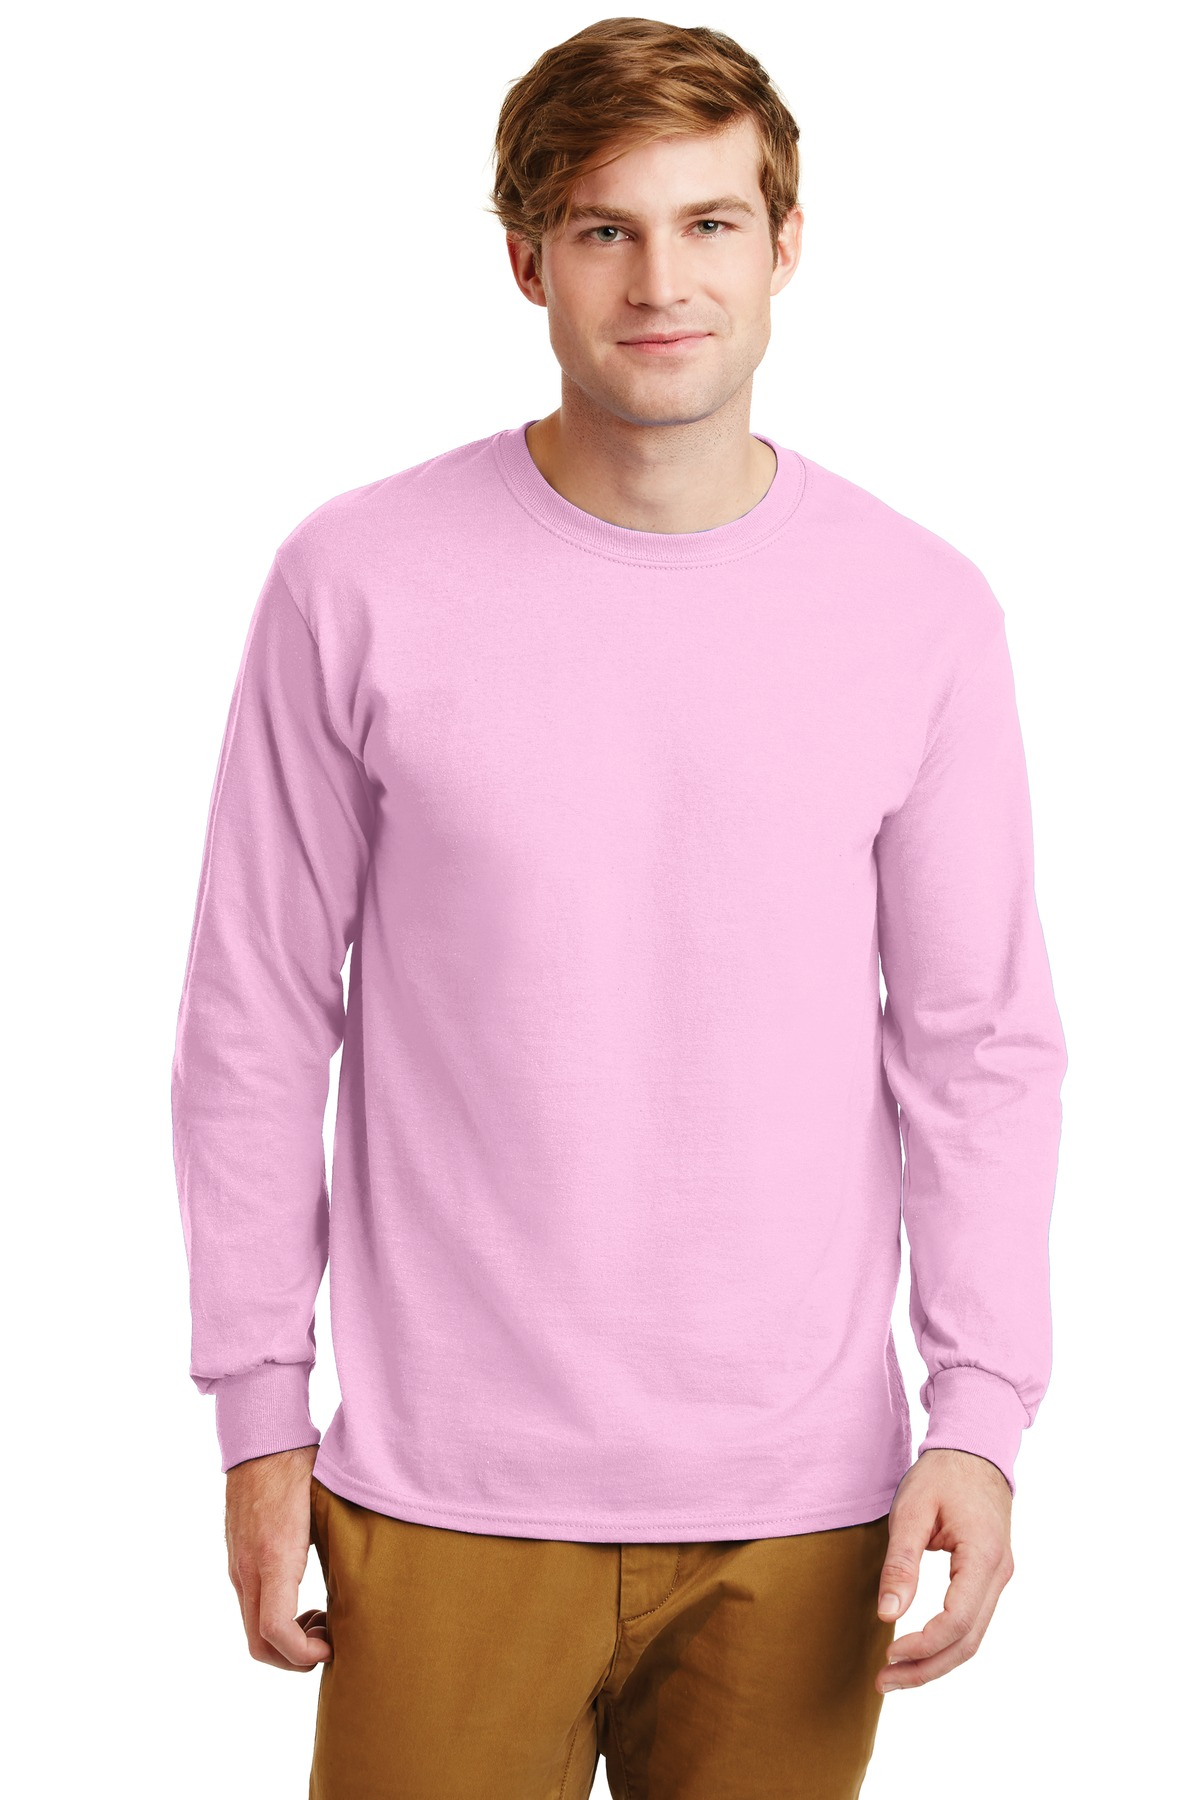 Gildan ®  - Ultra Cotton ®  100% Cotton Long Sleeve T-Shirt.  G2400 - Light Pink